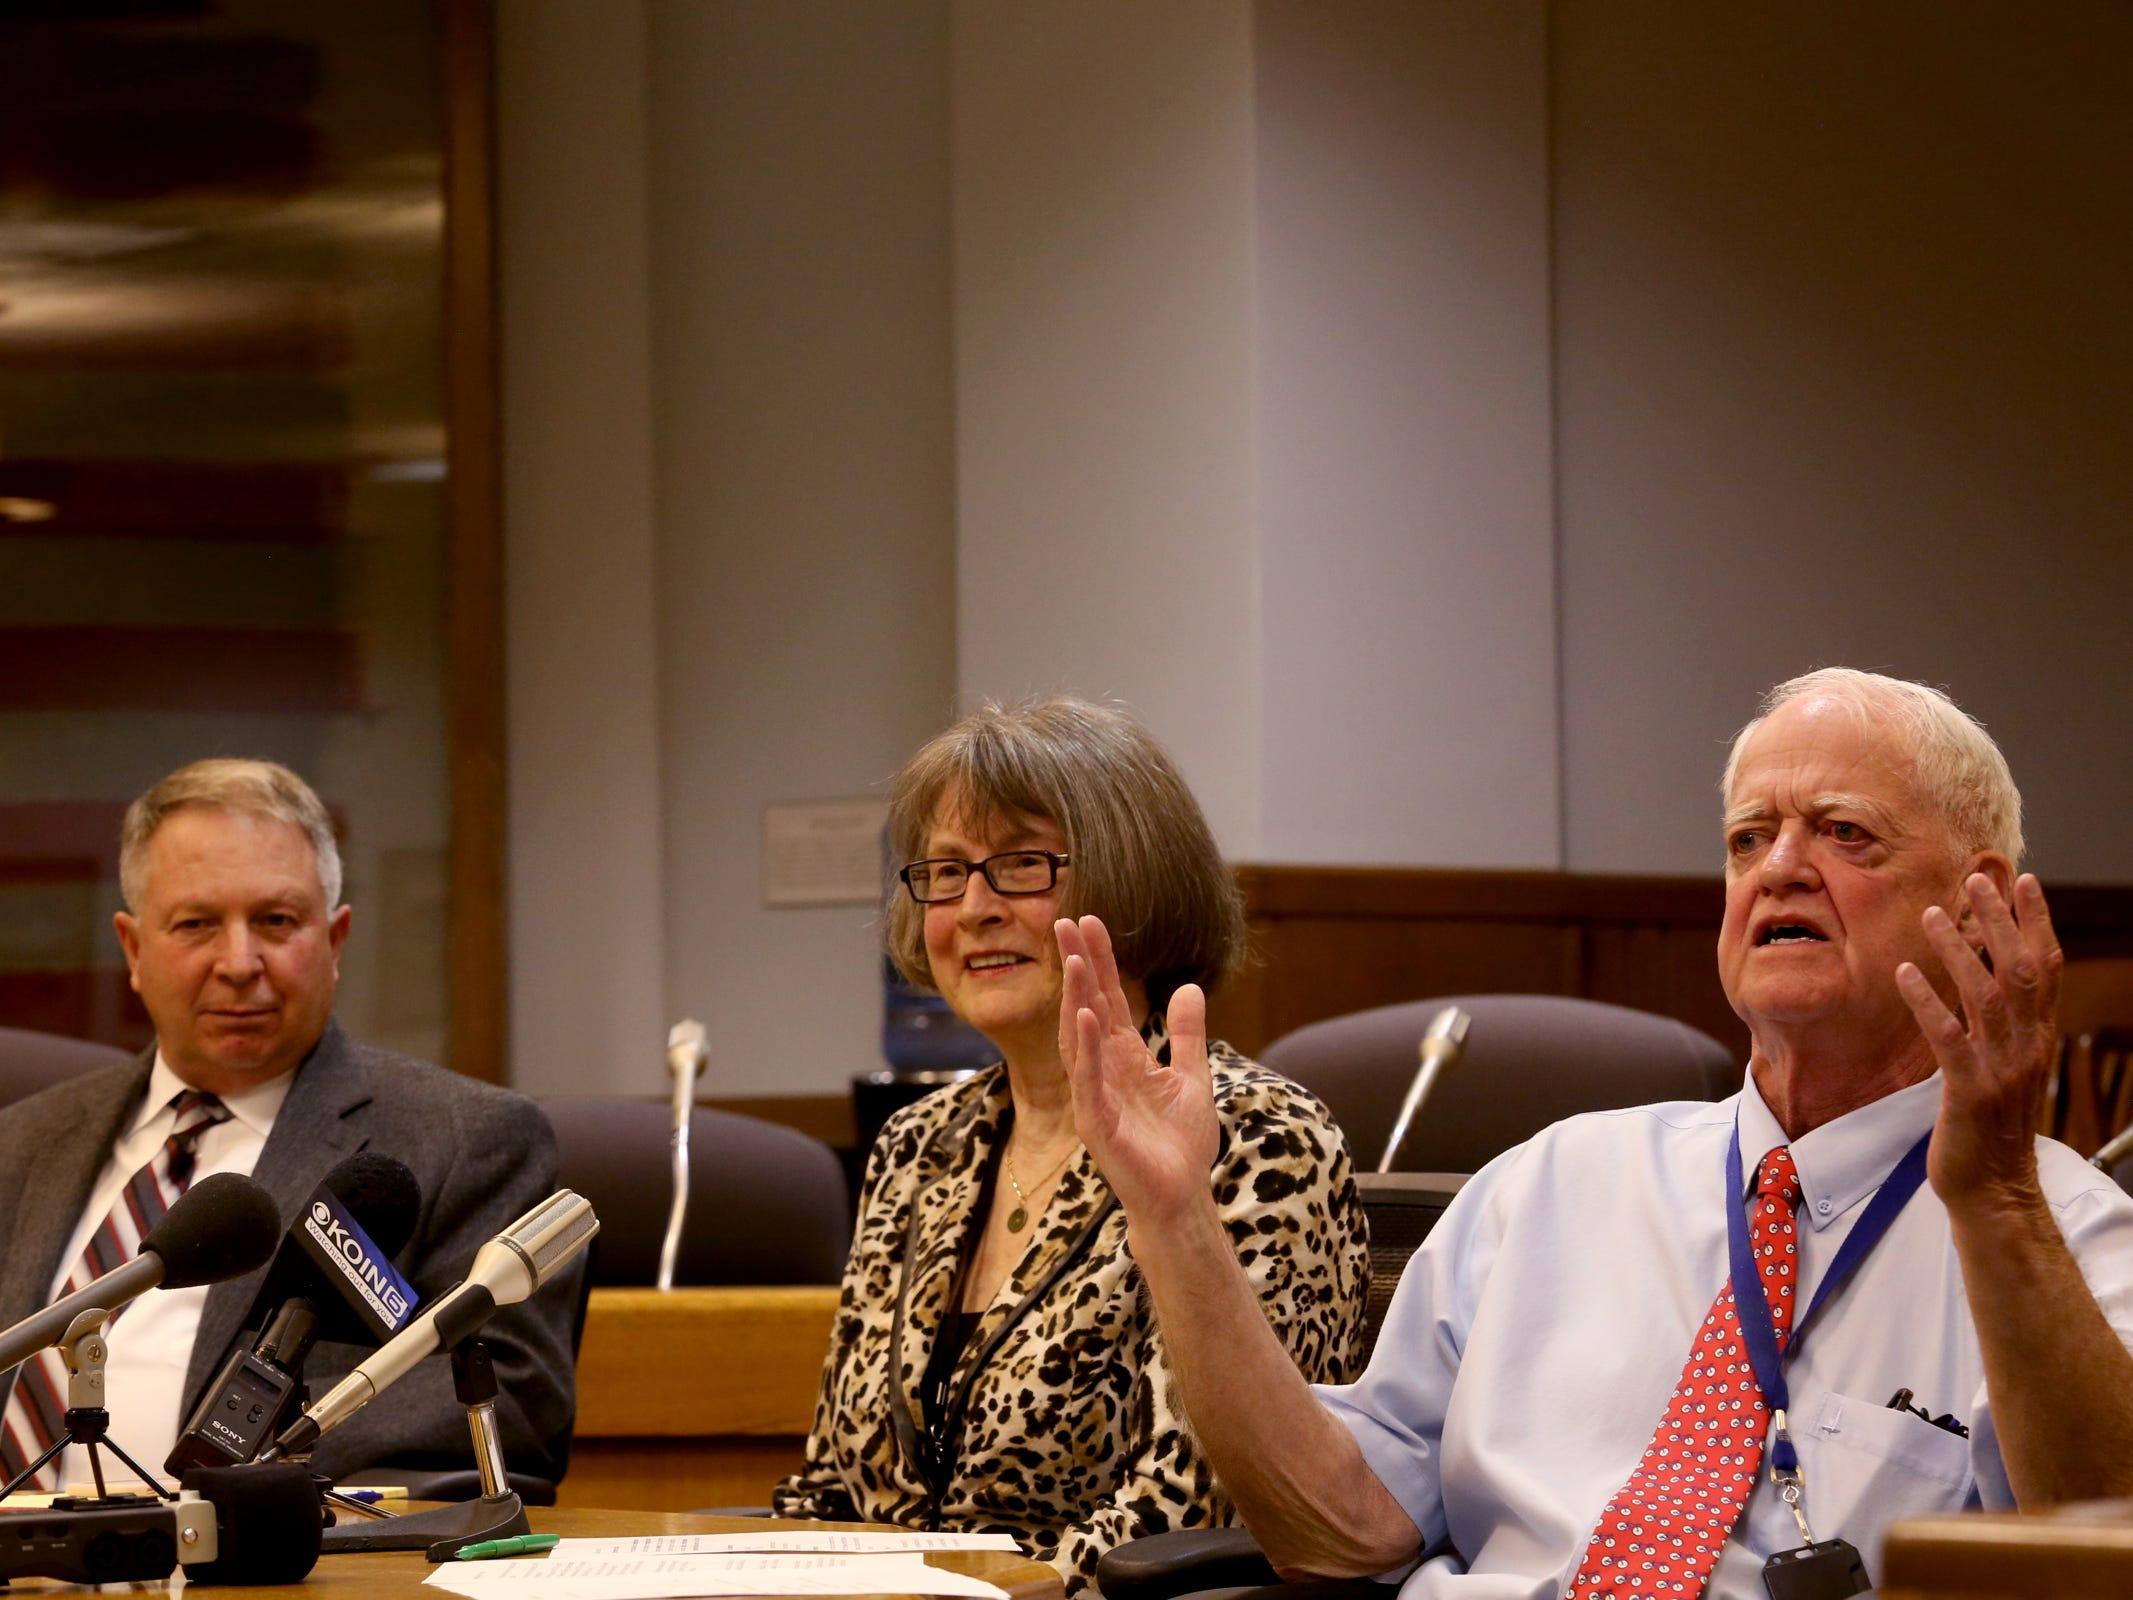 Sen. Herman Baertschiger Jr., R-Grants Pass, from left, Sen. Ginny Burdick, D-Portland, and Senate President Peter Courtney speak during the AP Legislative Preview Day at the Oregon State Capitol in Salem on Friday, Jan. 18, 2019. The 2019 Oregon legislative session begins January 22.